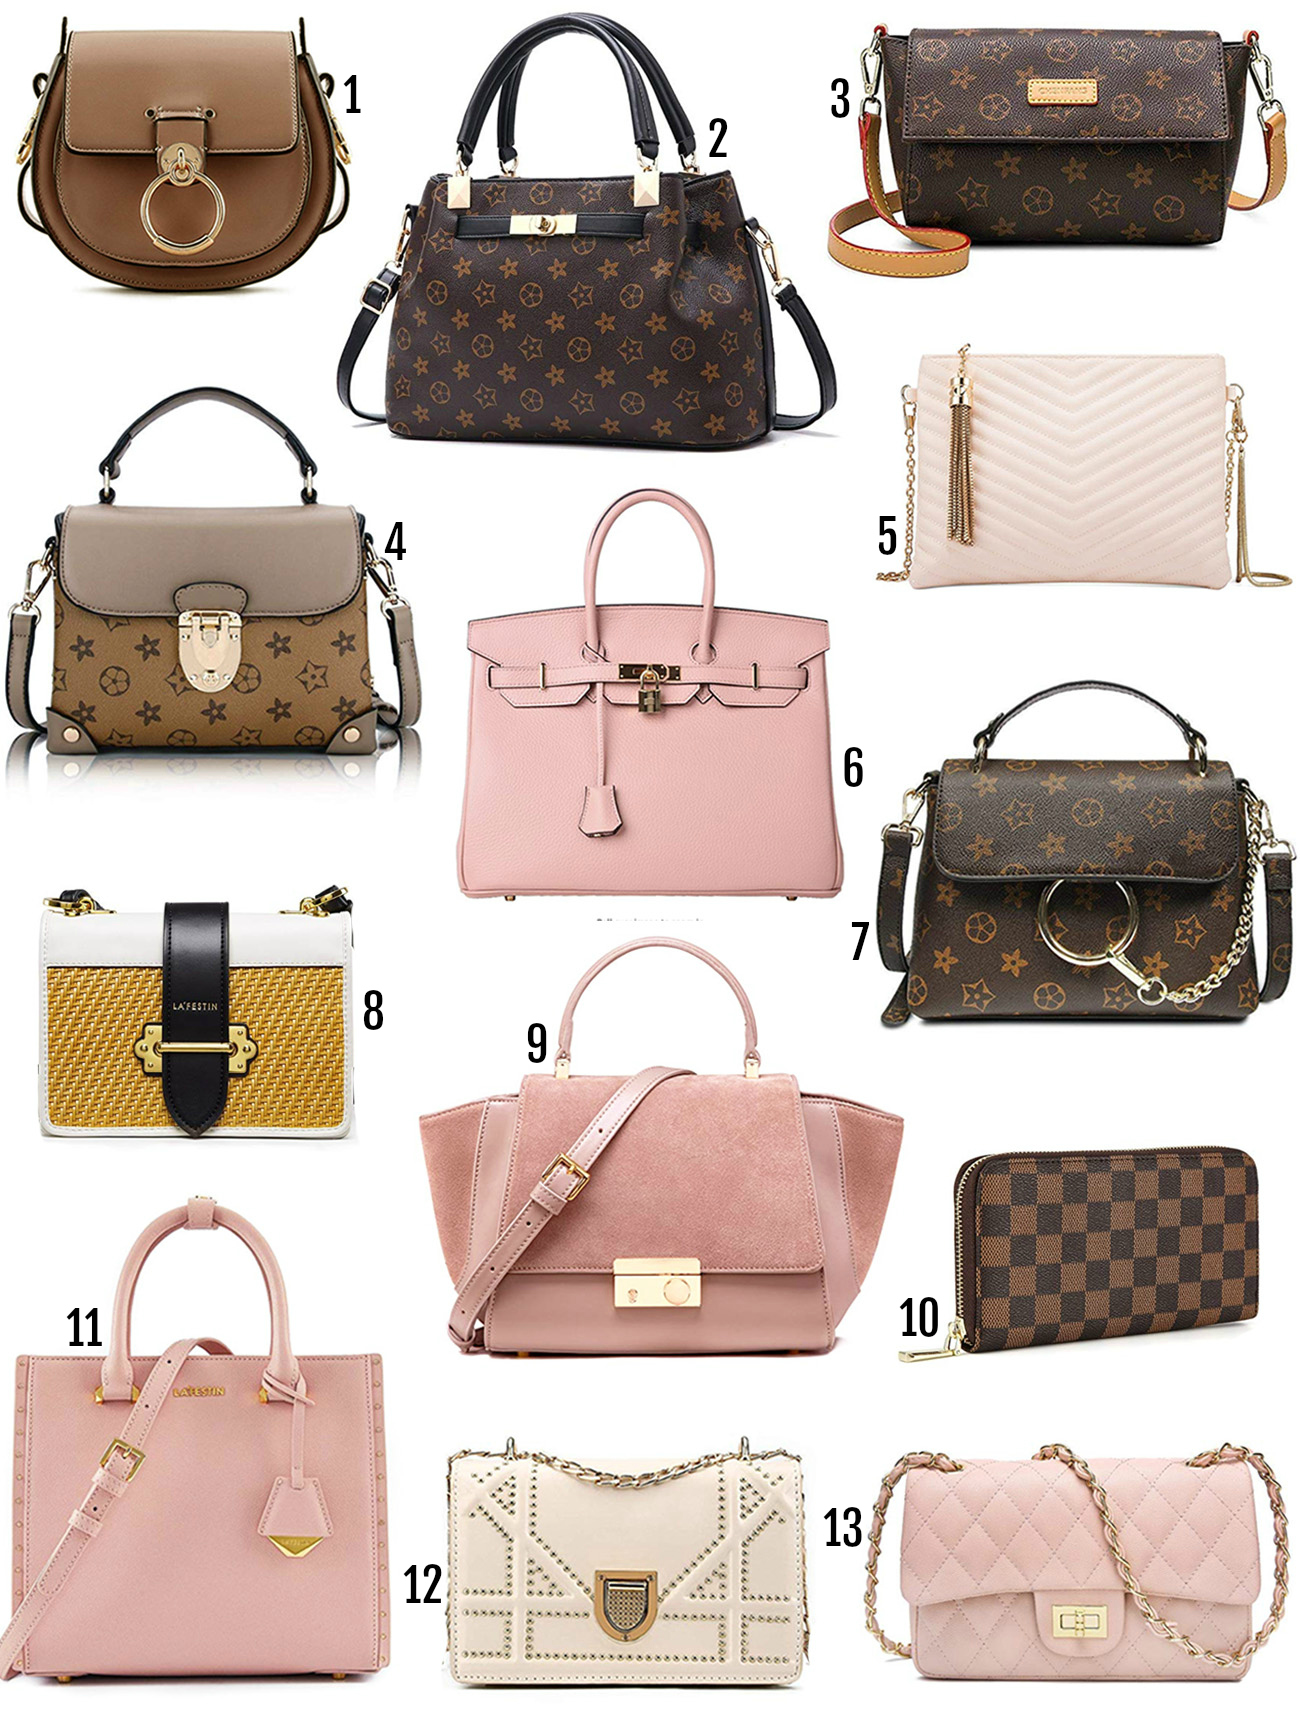 35 Designer Bag Dupes To Grab On Mash Elle